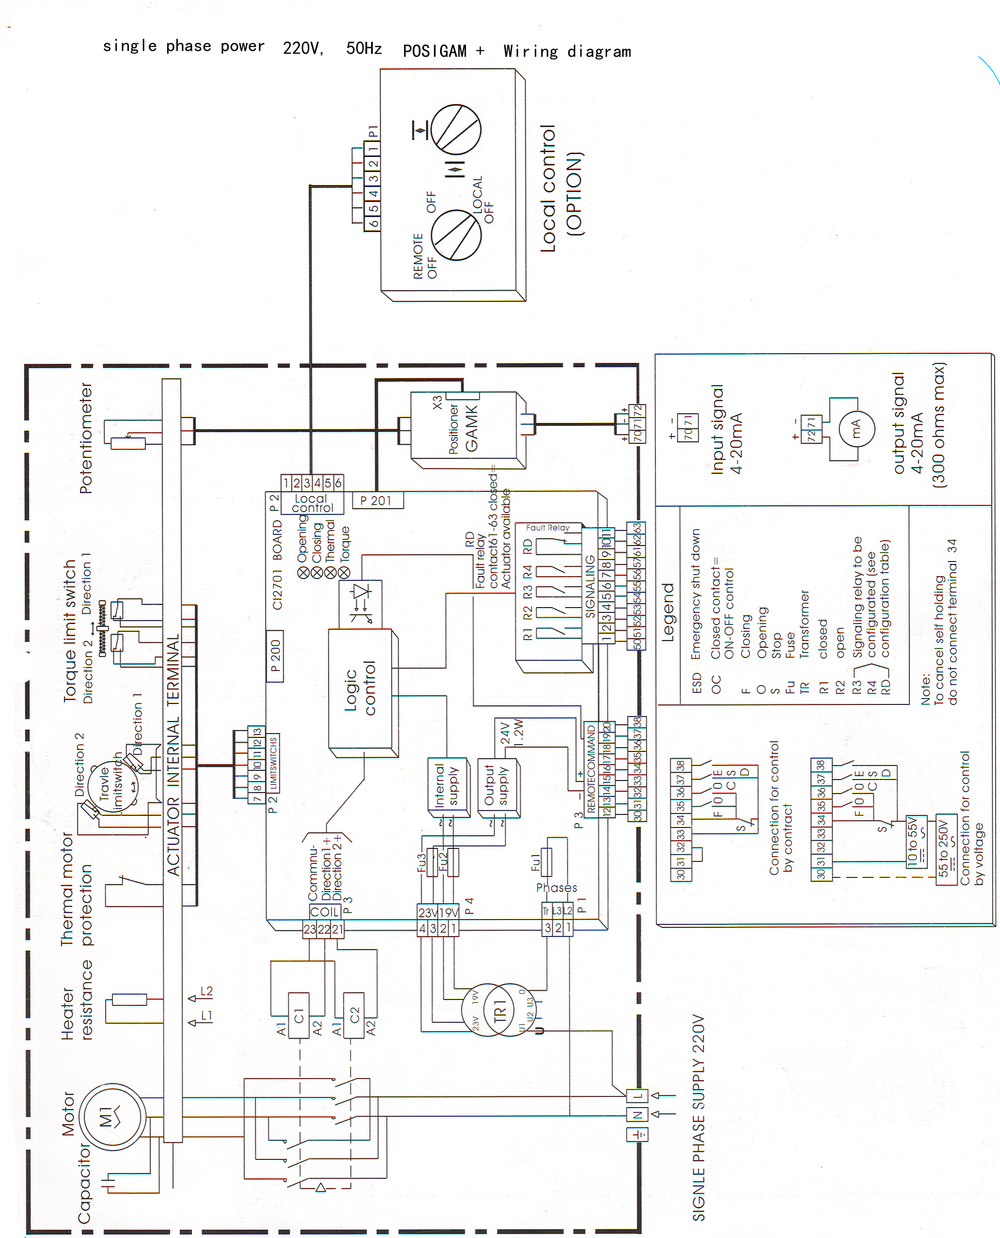 rotork iq 20 wiring diagram   27 wiring diagram images